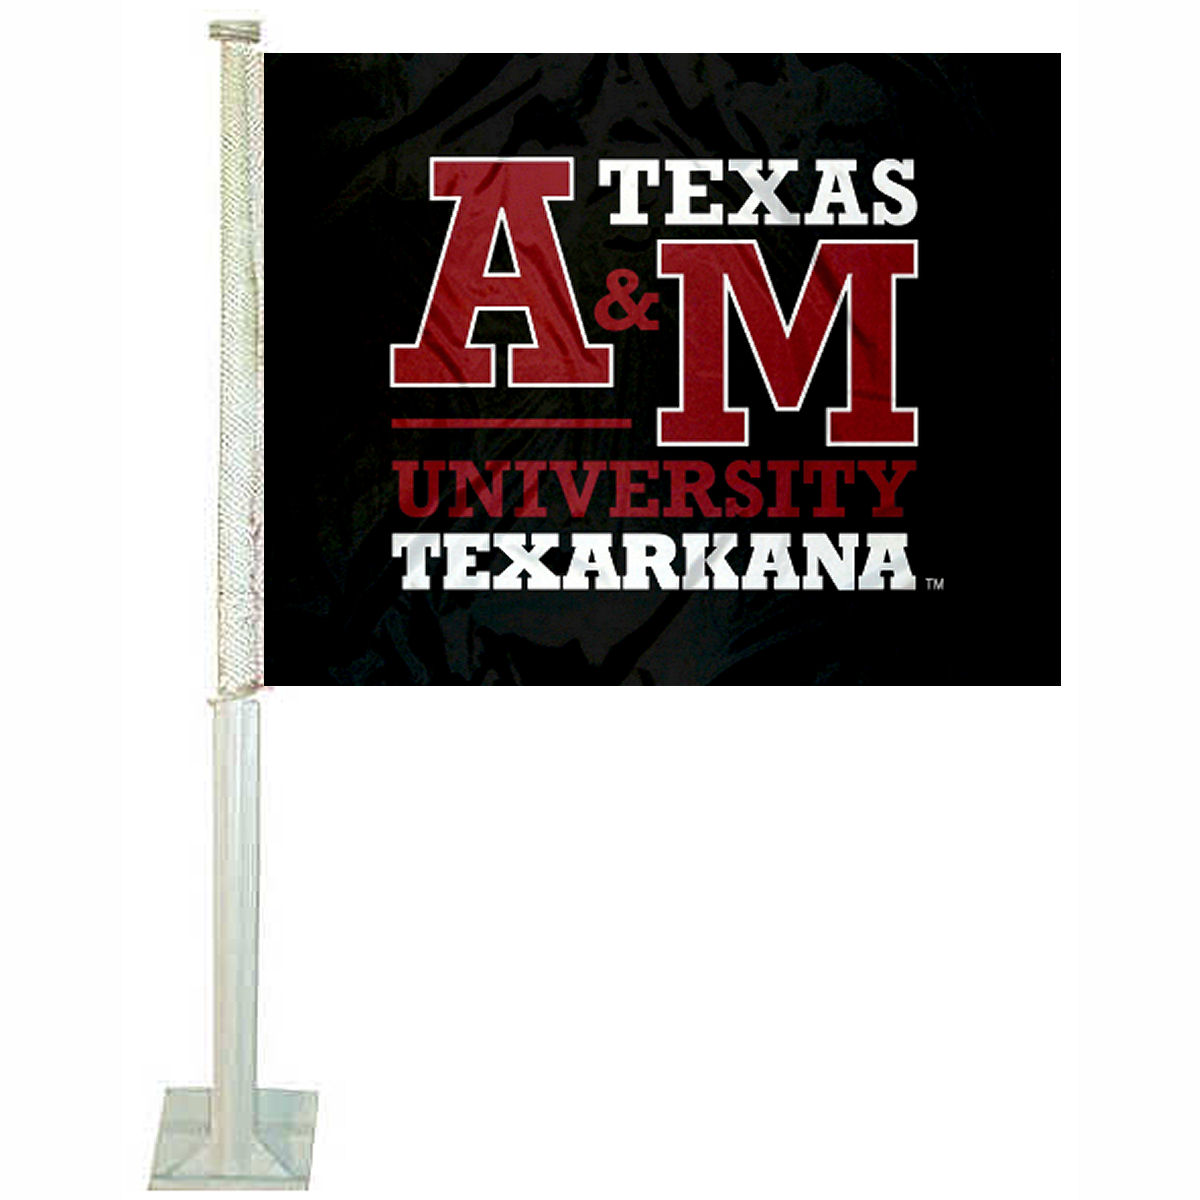 "Texas A&M University Texarkana 12"" x 15"" Car Flag"